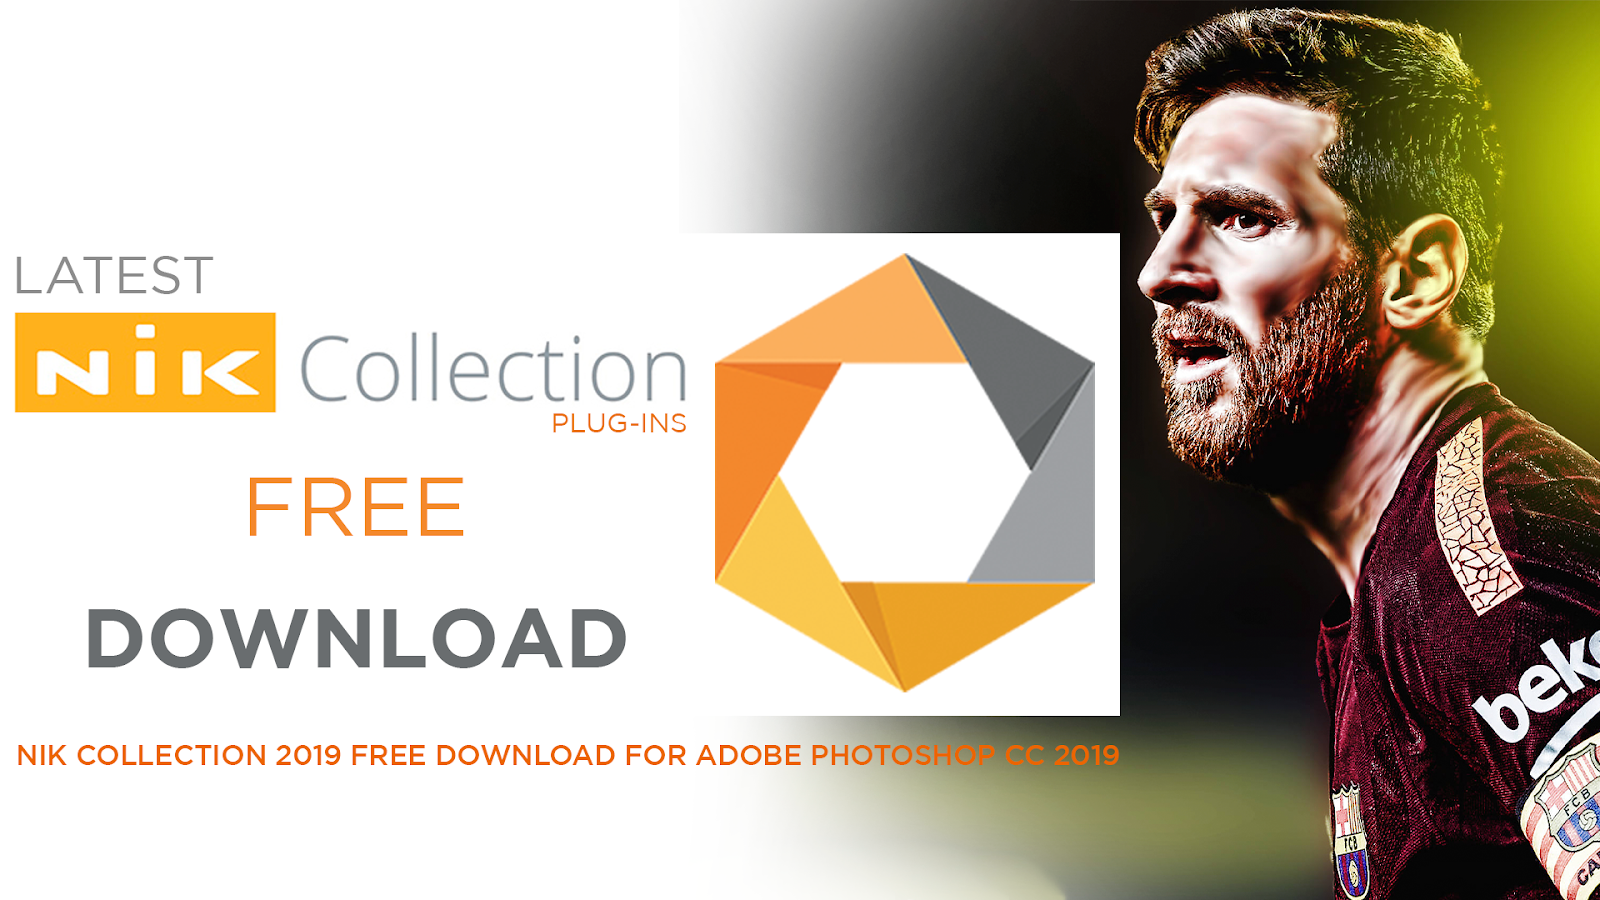 how to download nick collection, download nik collection, nik collection download, nik collection, nik collection plugin, nik collection logo, how to install nik collection in photoshop cc 2019, how to add nik collection in photoshop cc 2019, how to add nik collection in photoshop, how to download and install nik collection in photoshop, nick collection download for free, download nik collection for free, free nik collection download, nik collection free download, photoshop nik collection plugin, photoshop nik collection free download, free download plugin, download photoshop plugin free, free photoshop plugin, photoshop plugin, plugin, nick collection download for free, illphocorphics, illphocorphics tutorial,